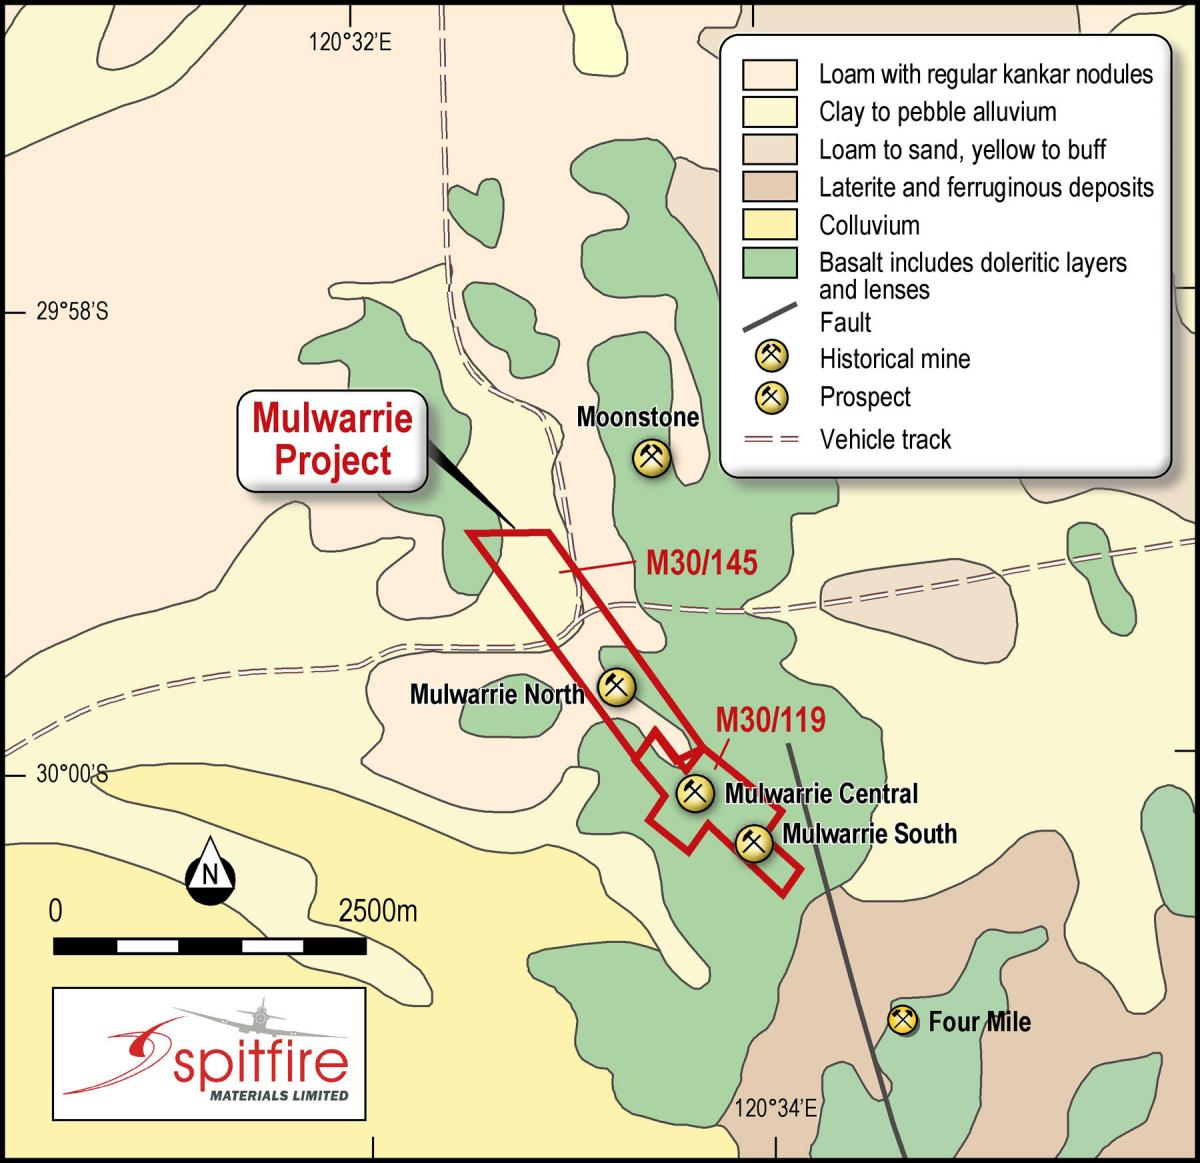 Spitfire Materials Mulwarrie tenements and simplified geology